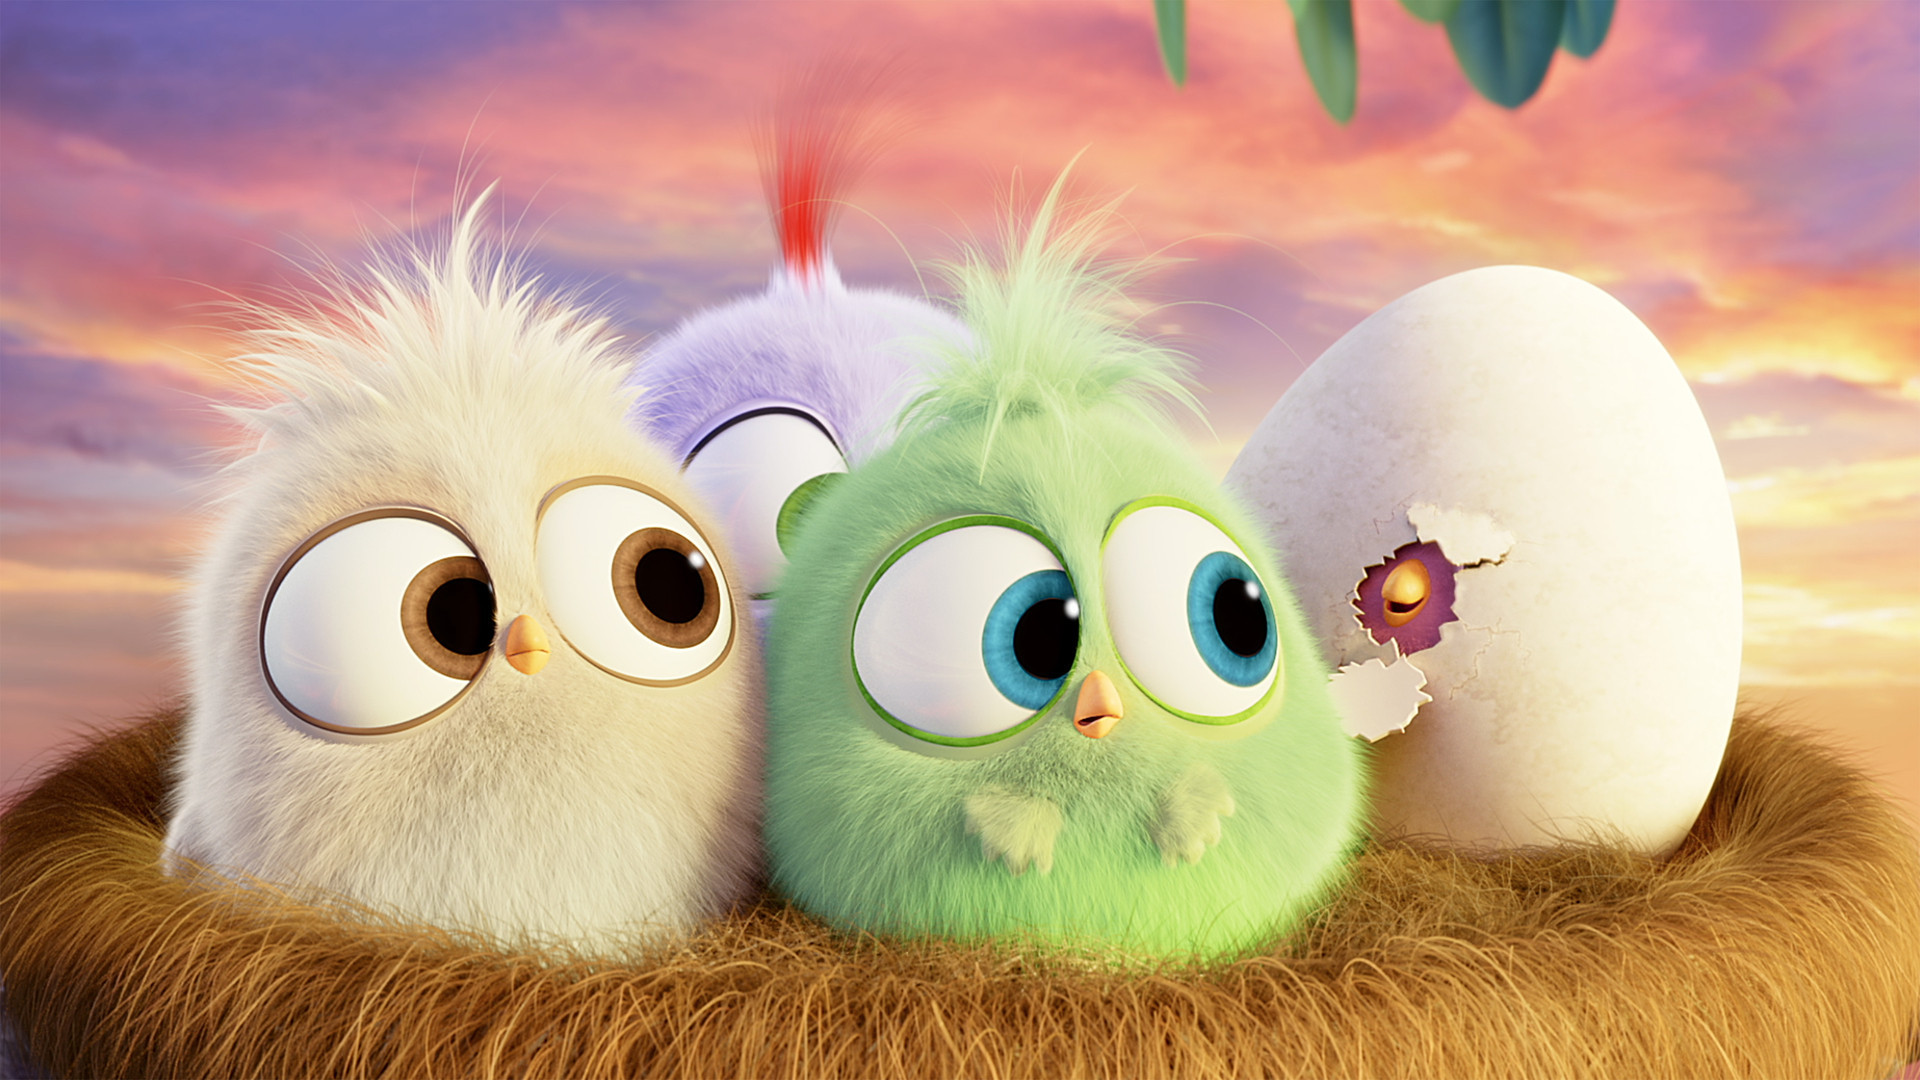 1920x1080 Hatchlings Angry Birds Hd Wallpaper [] Need #iPhone #6S #Plus # Wallpaper/ #Background for #IPhone6SPlus? Follow iPhone 6S Plus 3Wallpapers…